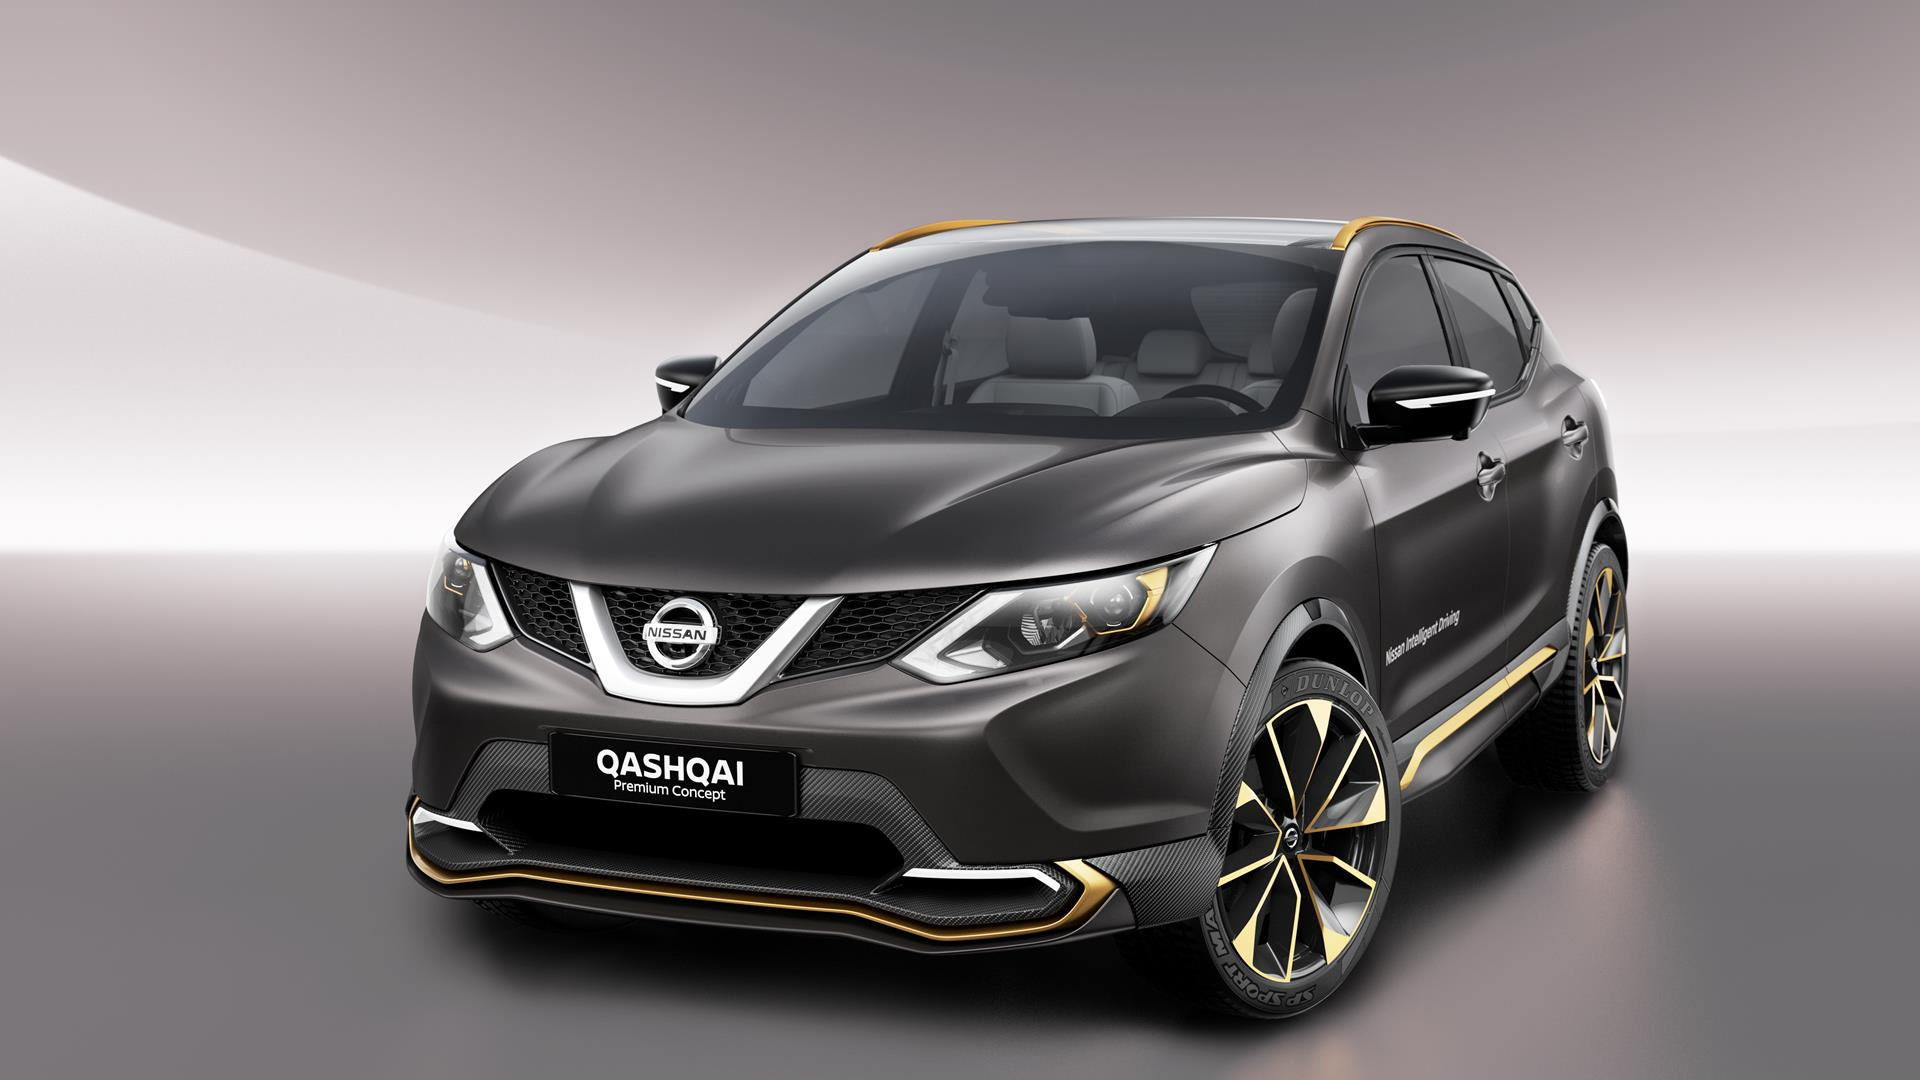 2016 Nissan Qashqai Premium Concept News And Information Research And Pricing